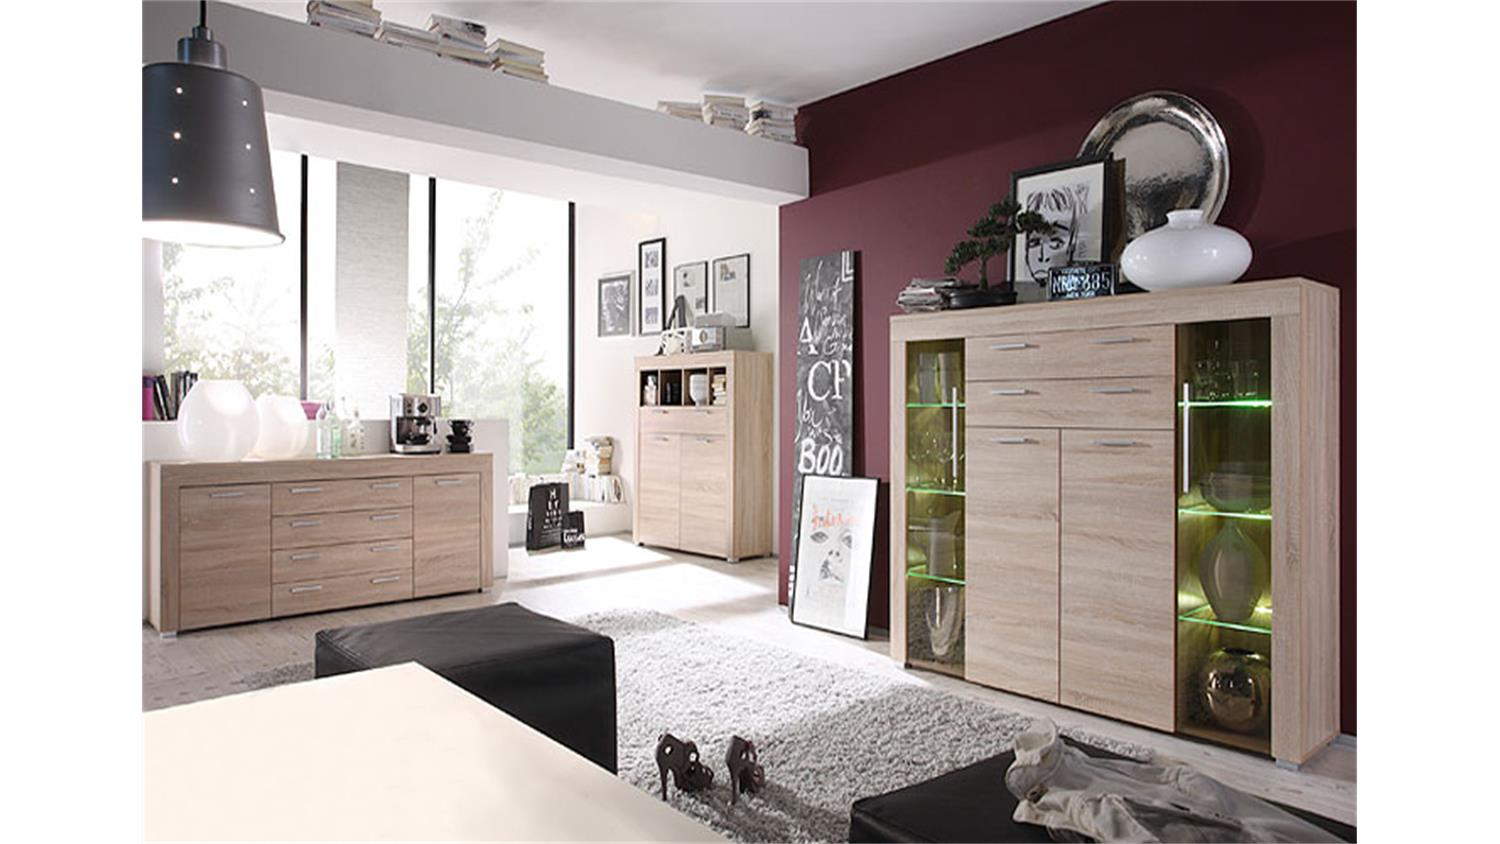 kommode boom schrank sideboard in sonoma eiche s gerau hell. Black Bedroom Furniture Sets. Home Design Ideas